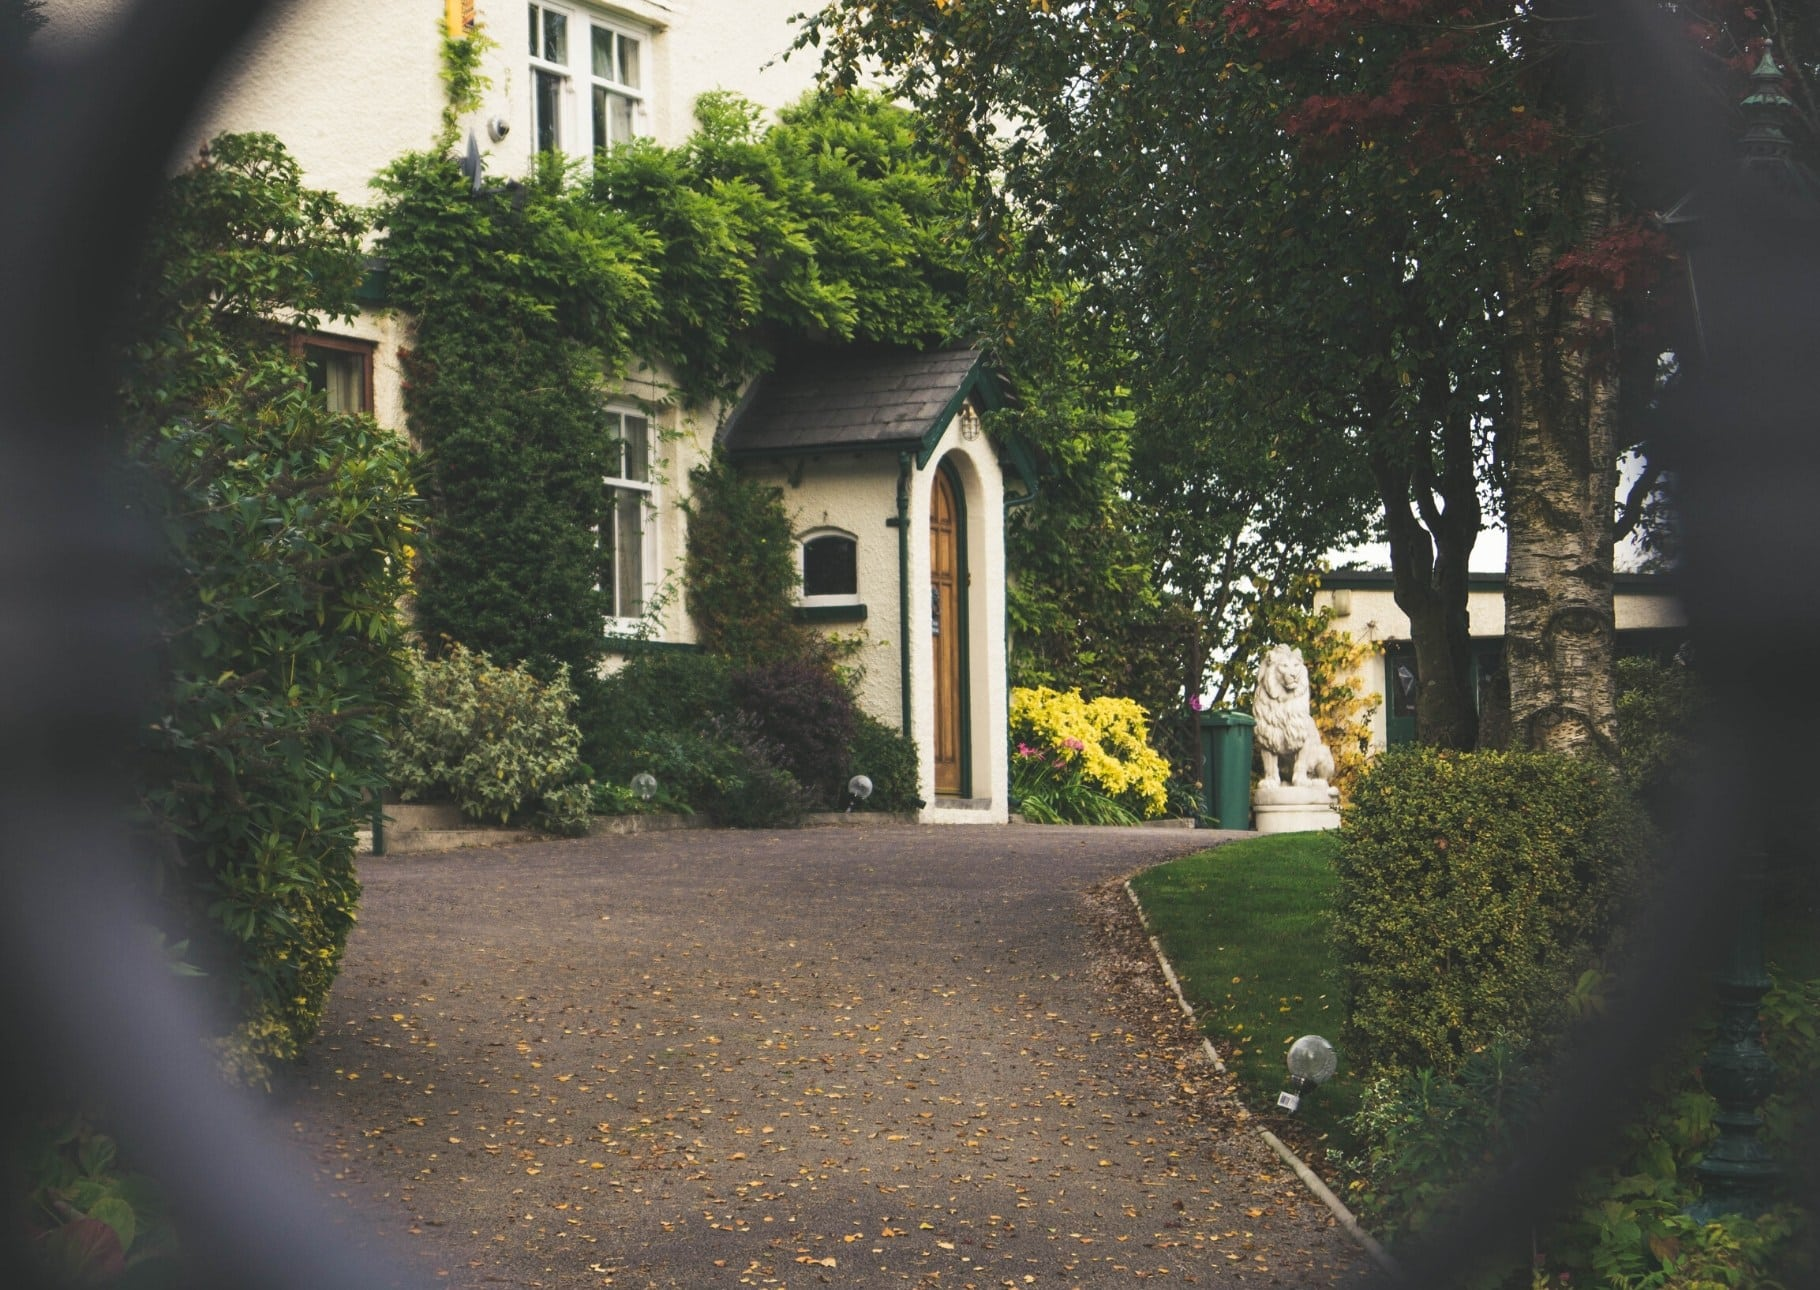 Shot of the front door and courtyard of a white house through a gate.